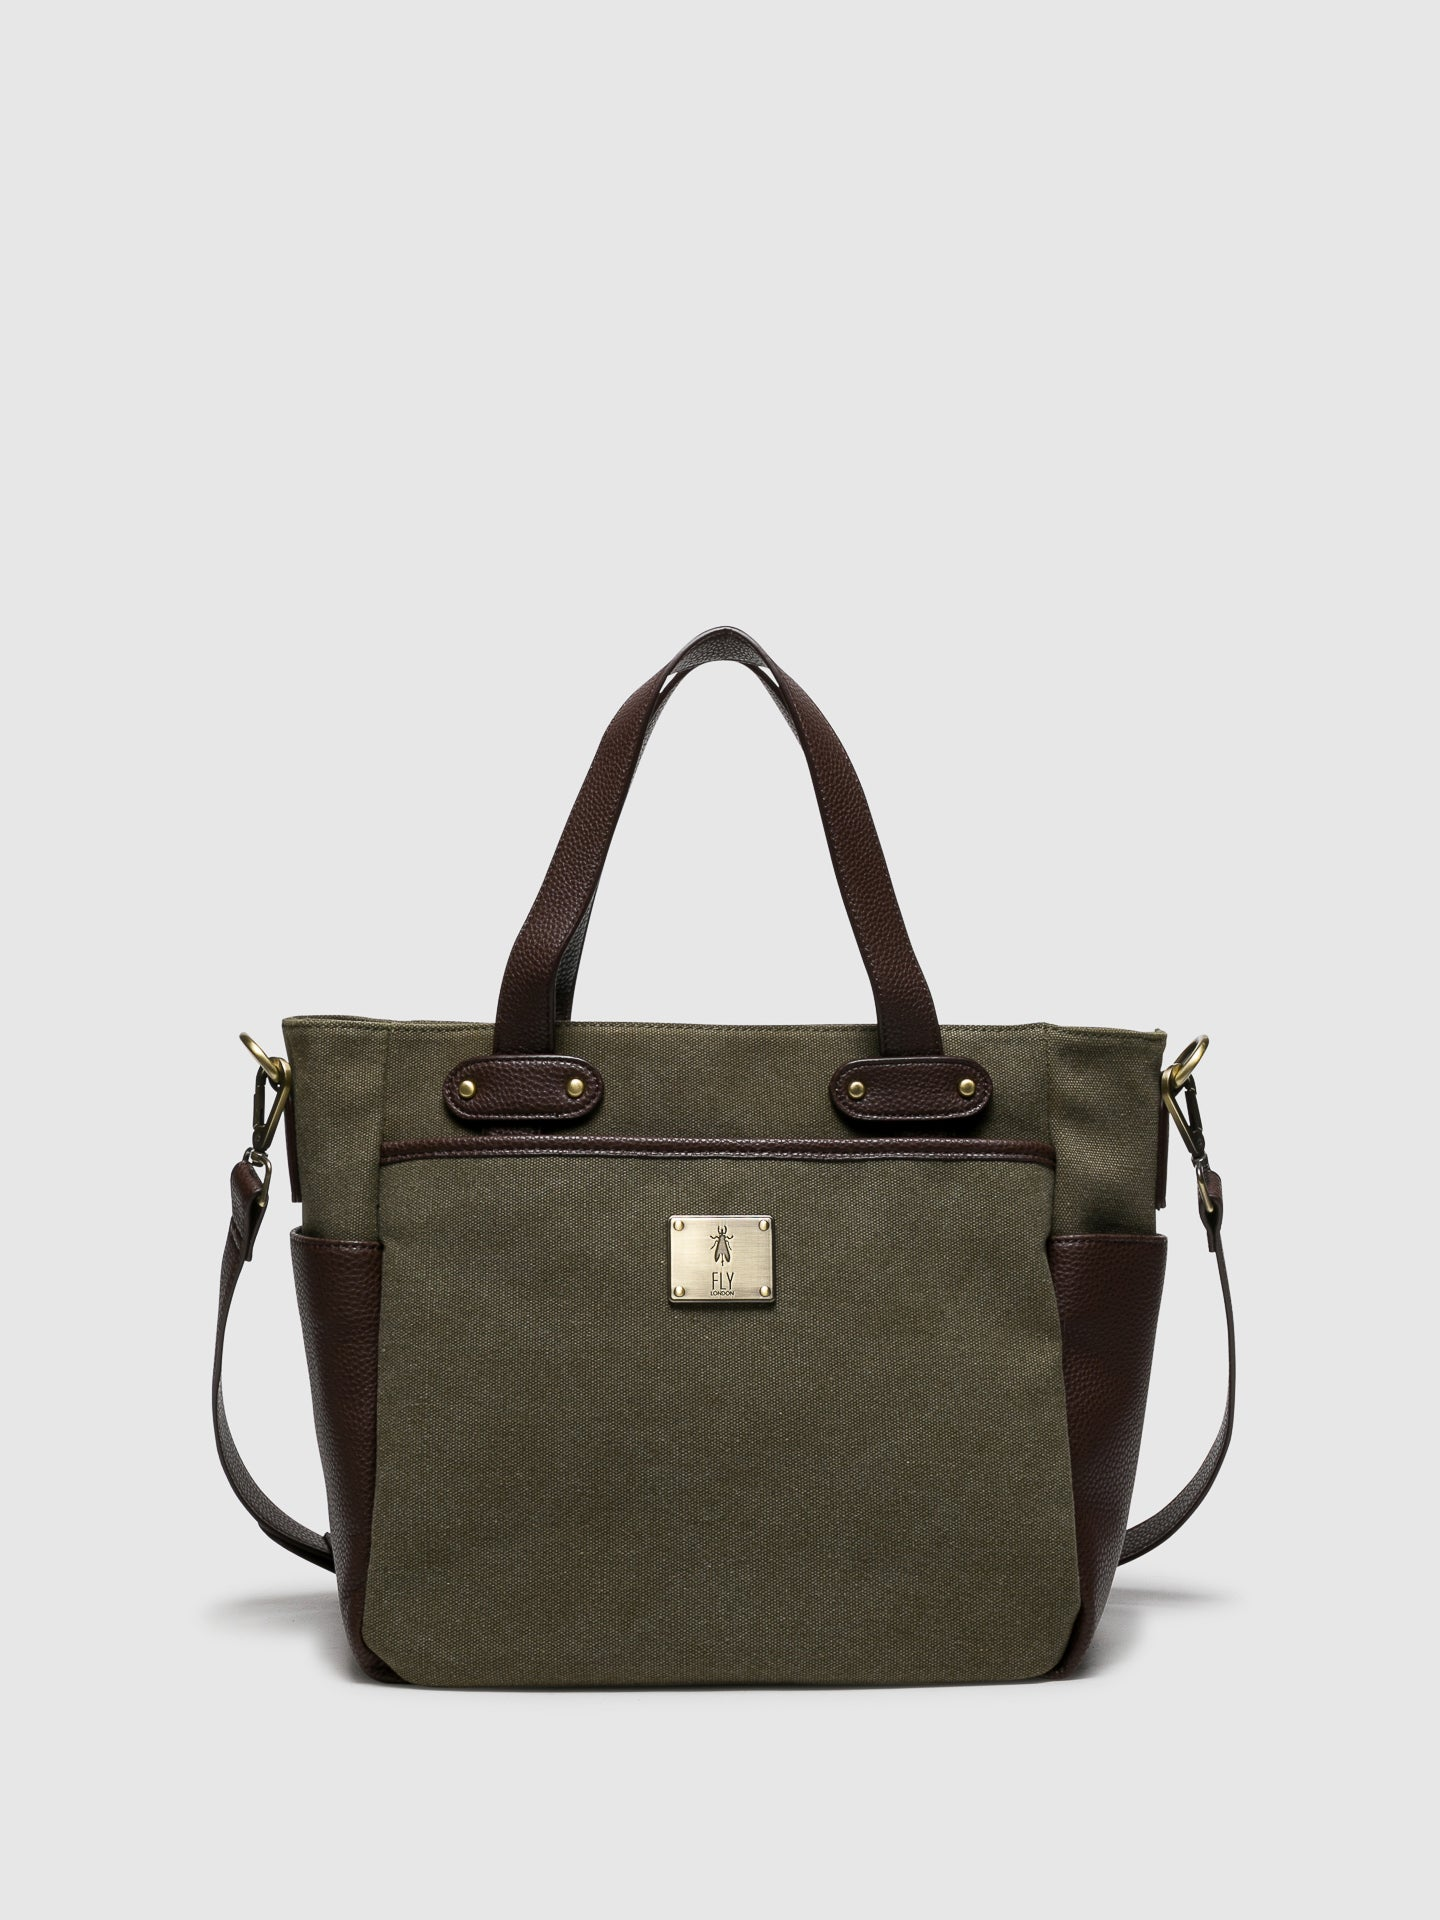 Fly London Brown Tote Bag